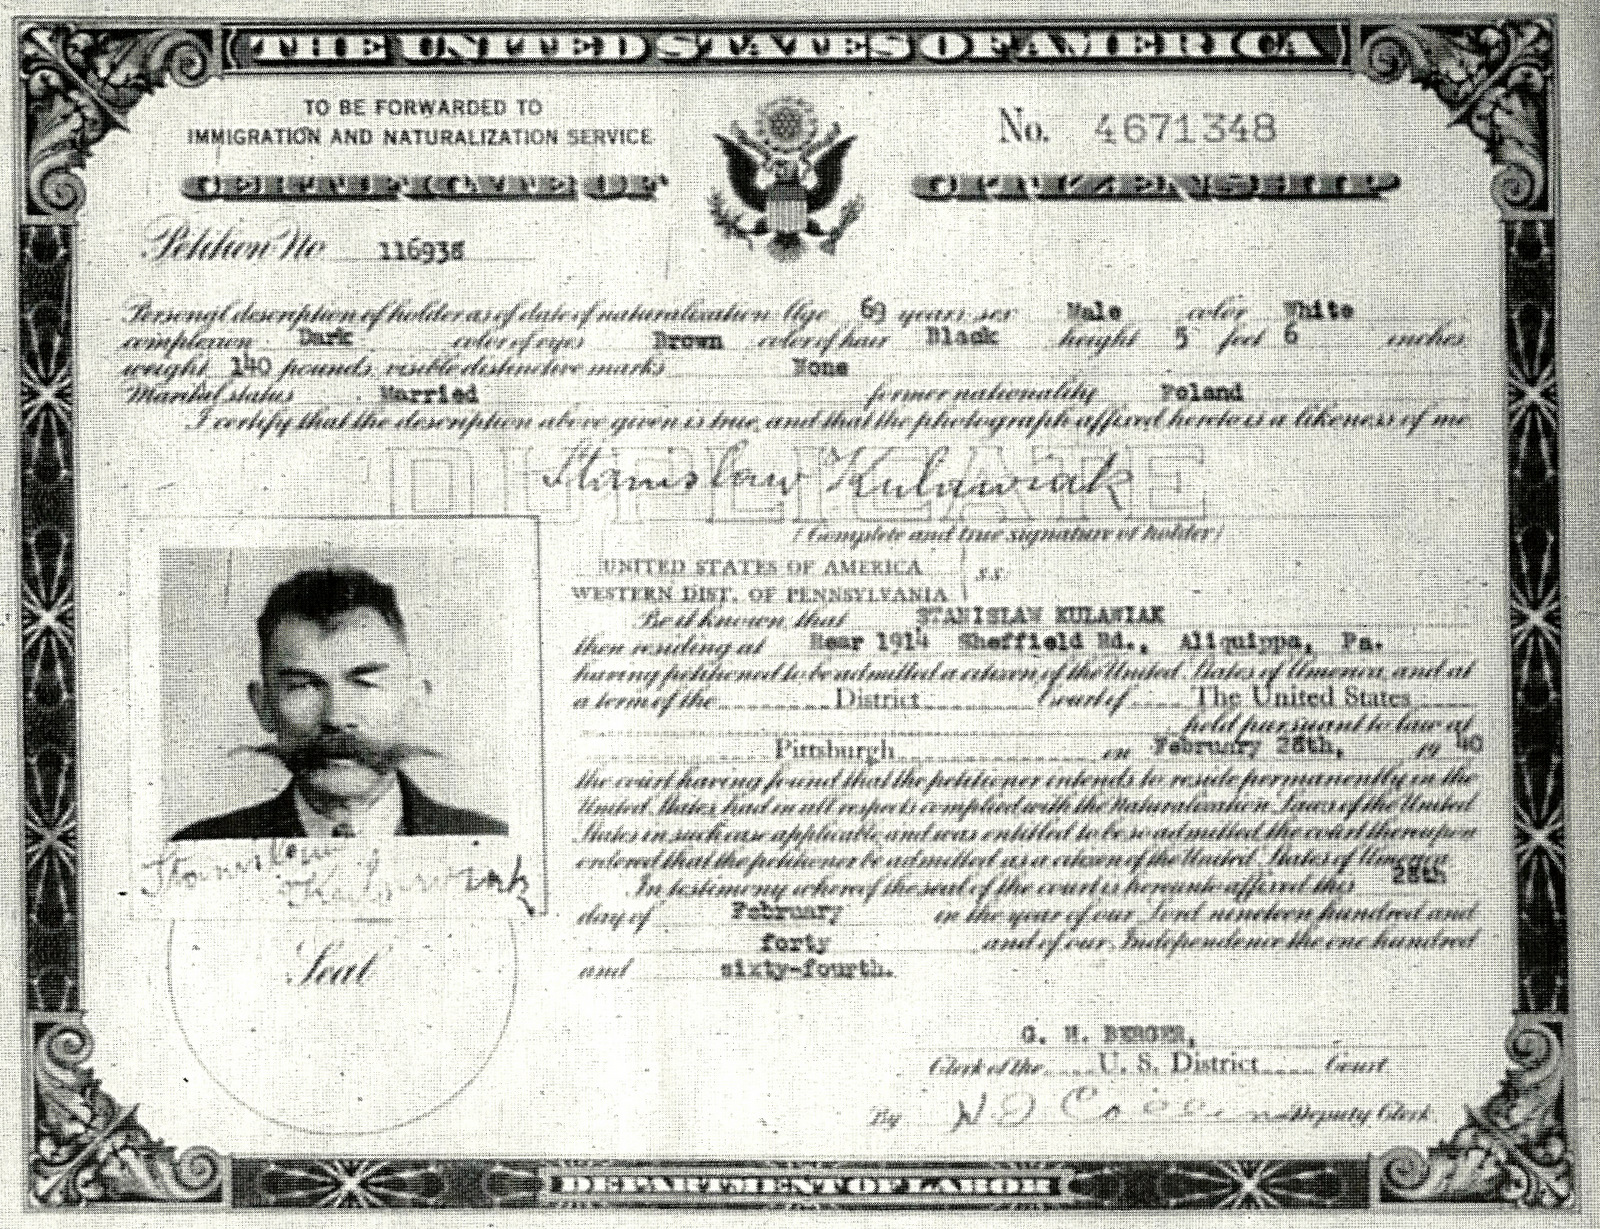 How To Get A Copy Of Naturalization Certificate Online